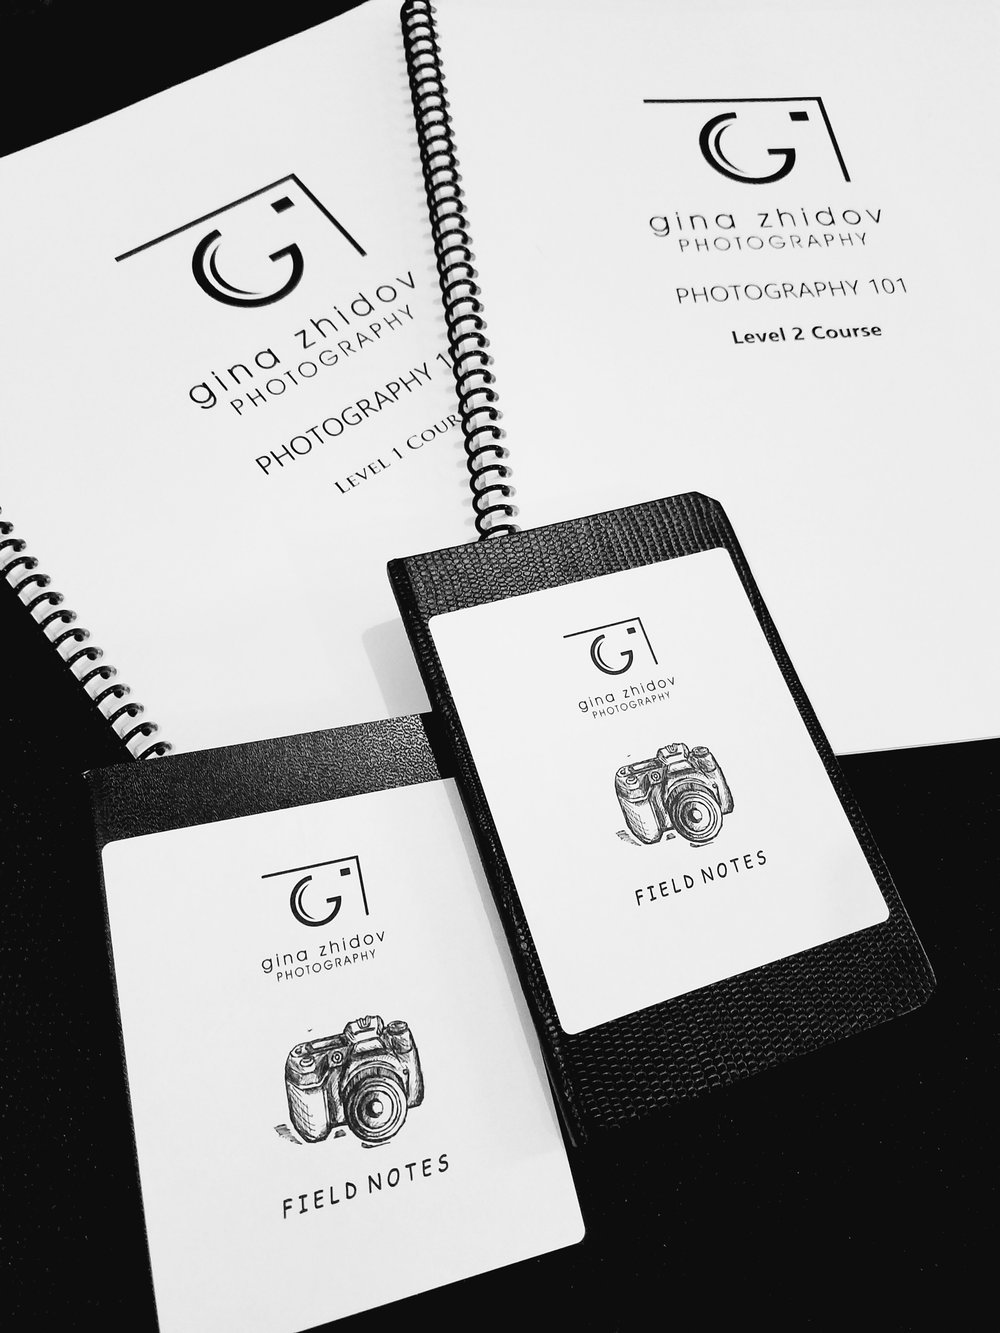 Field notebooks and course booklet